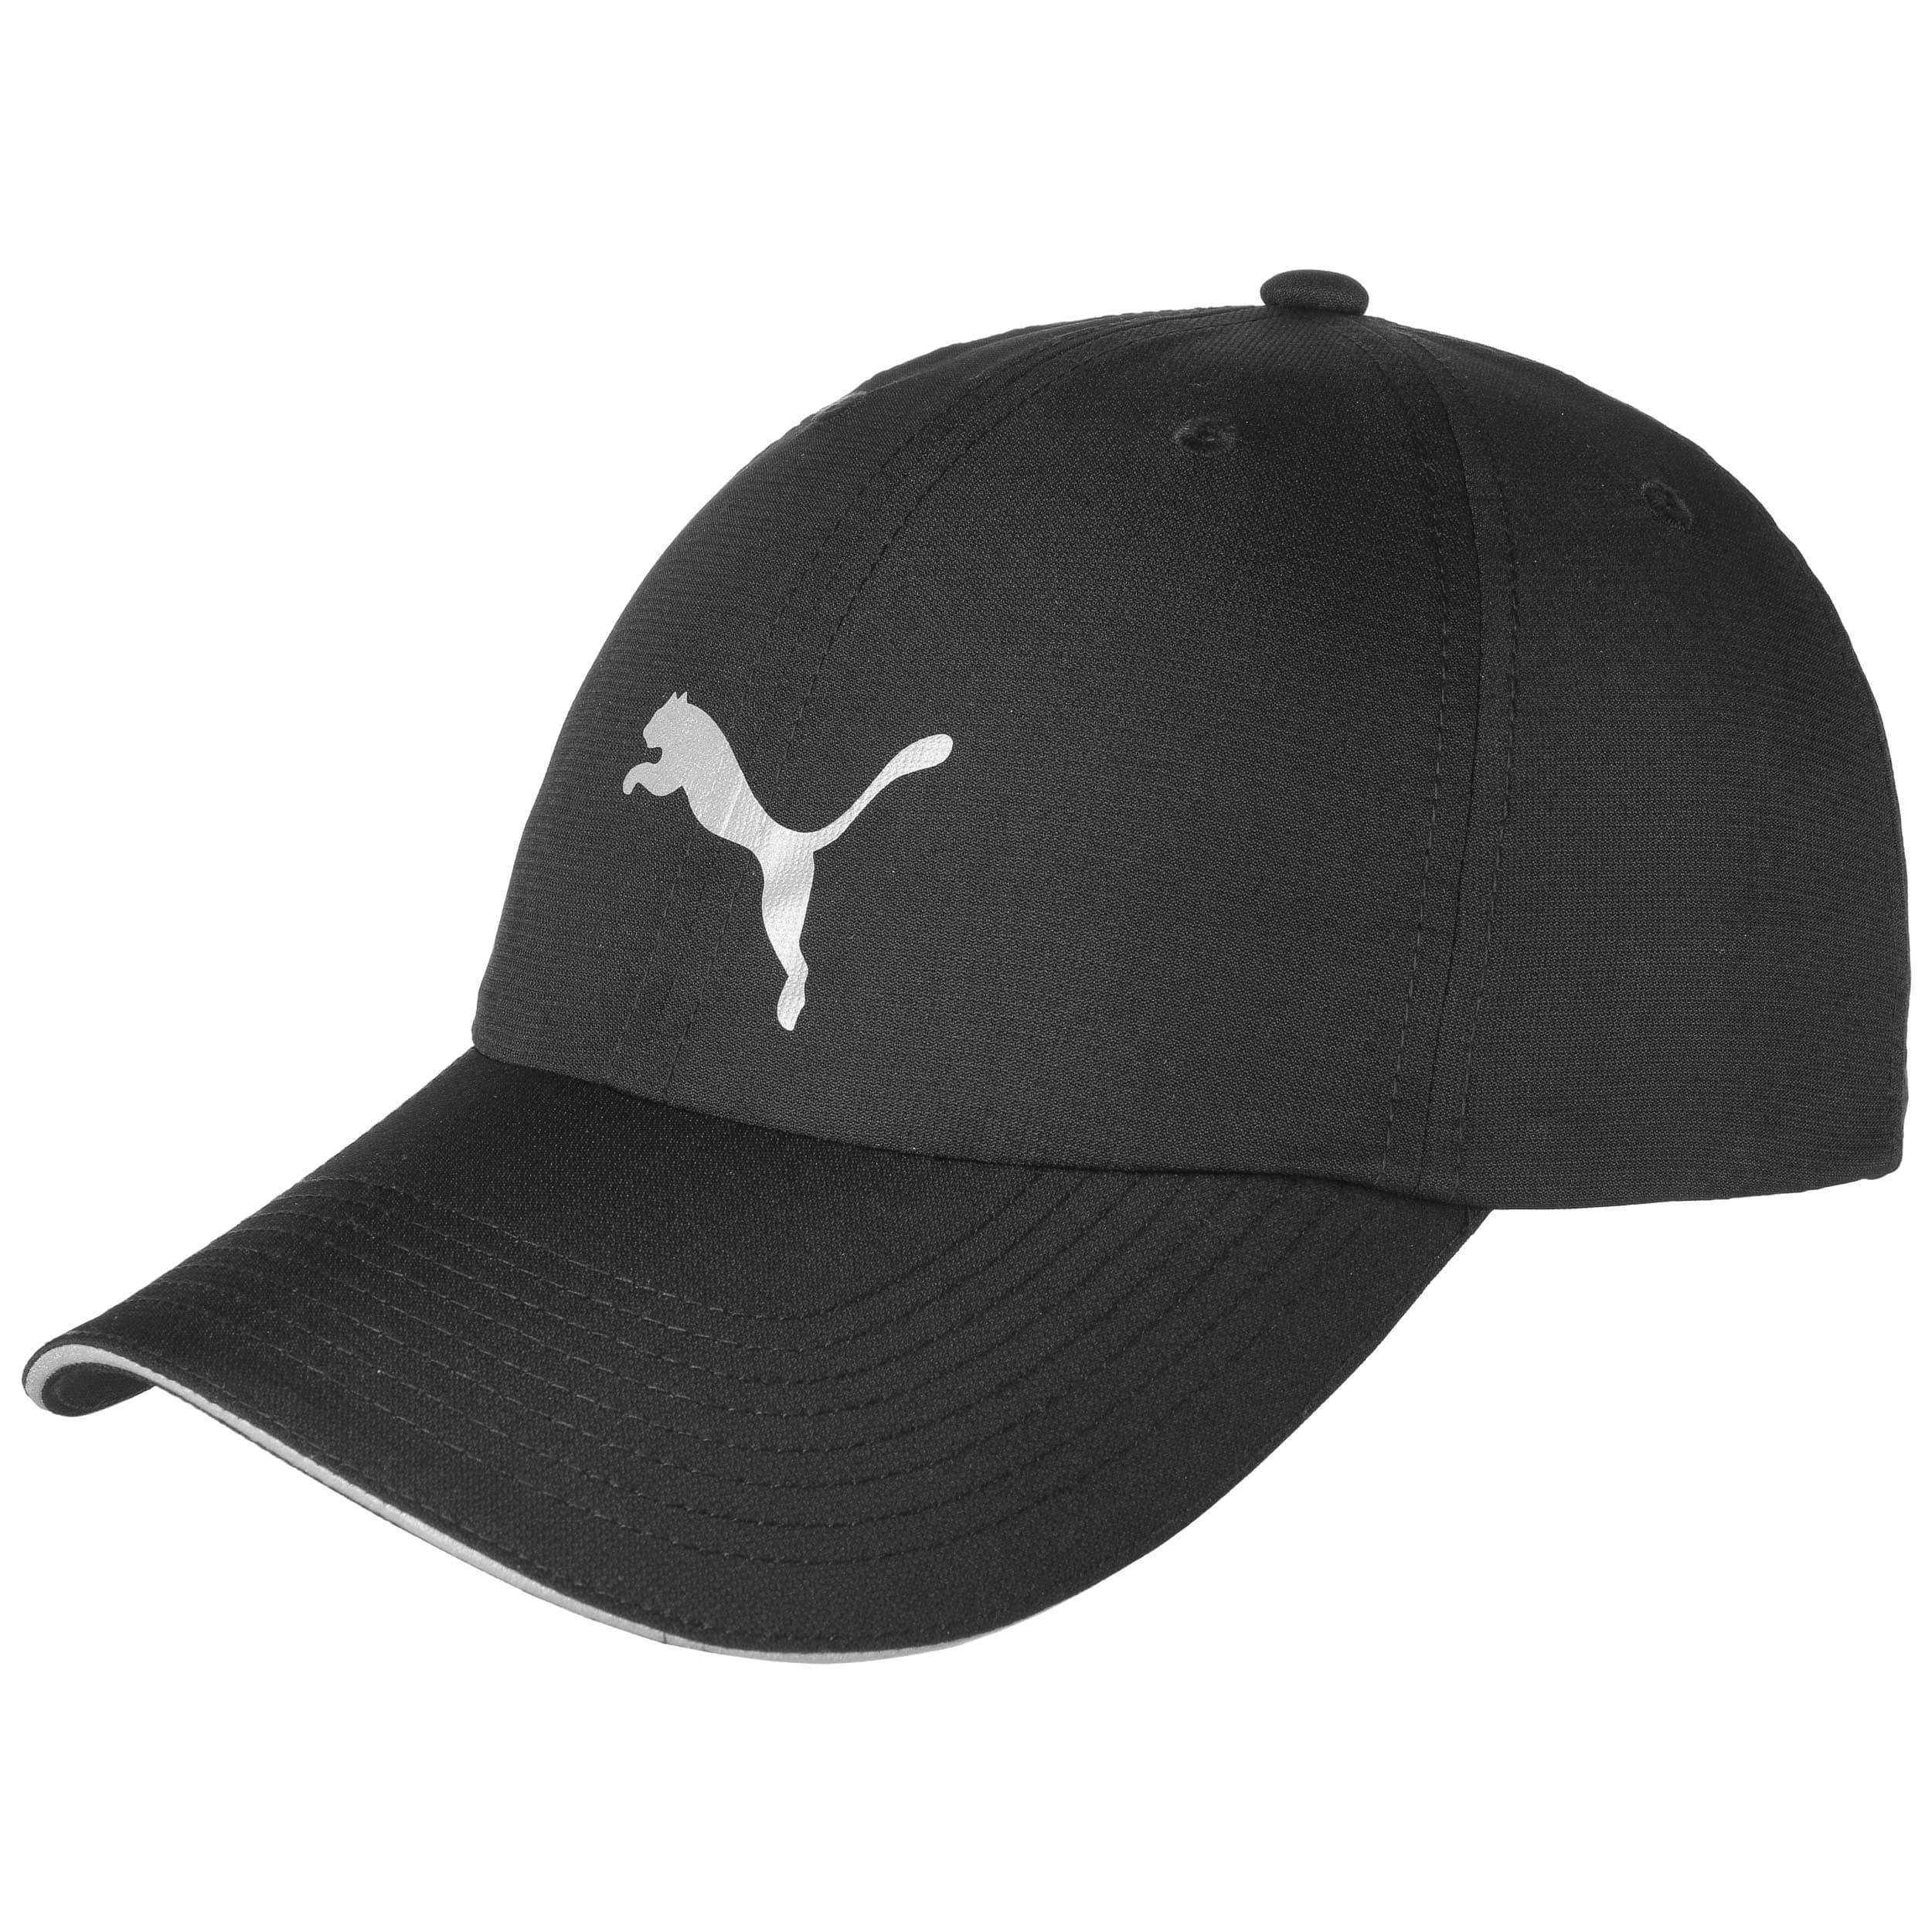 quality design 65544 8bffd ... Performance Running Cap III by PUMA - schwarz 6 ...